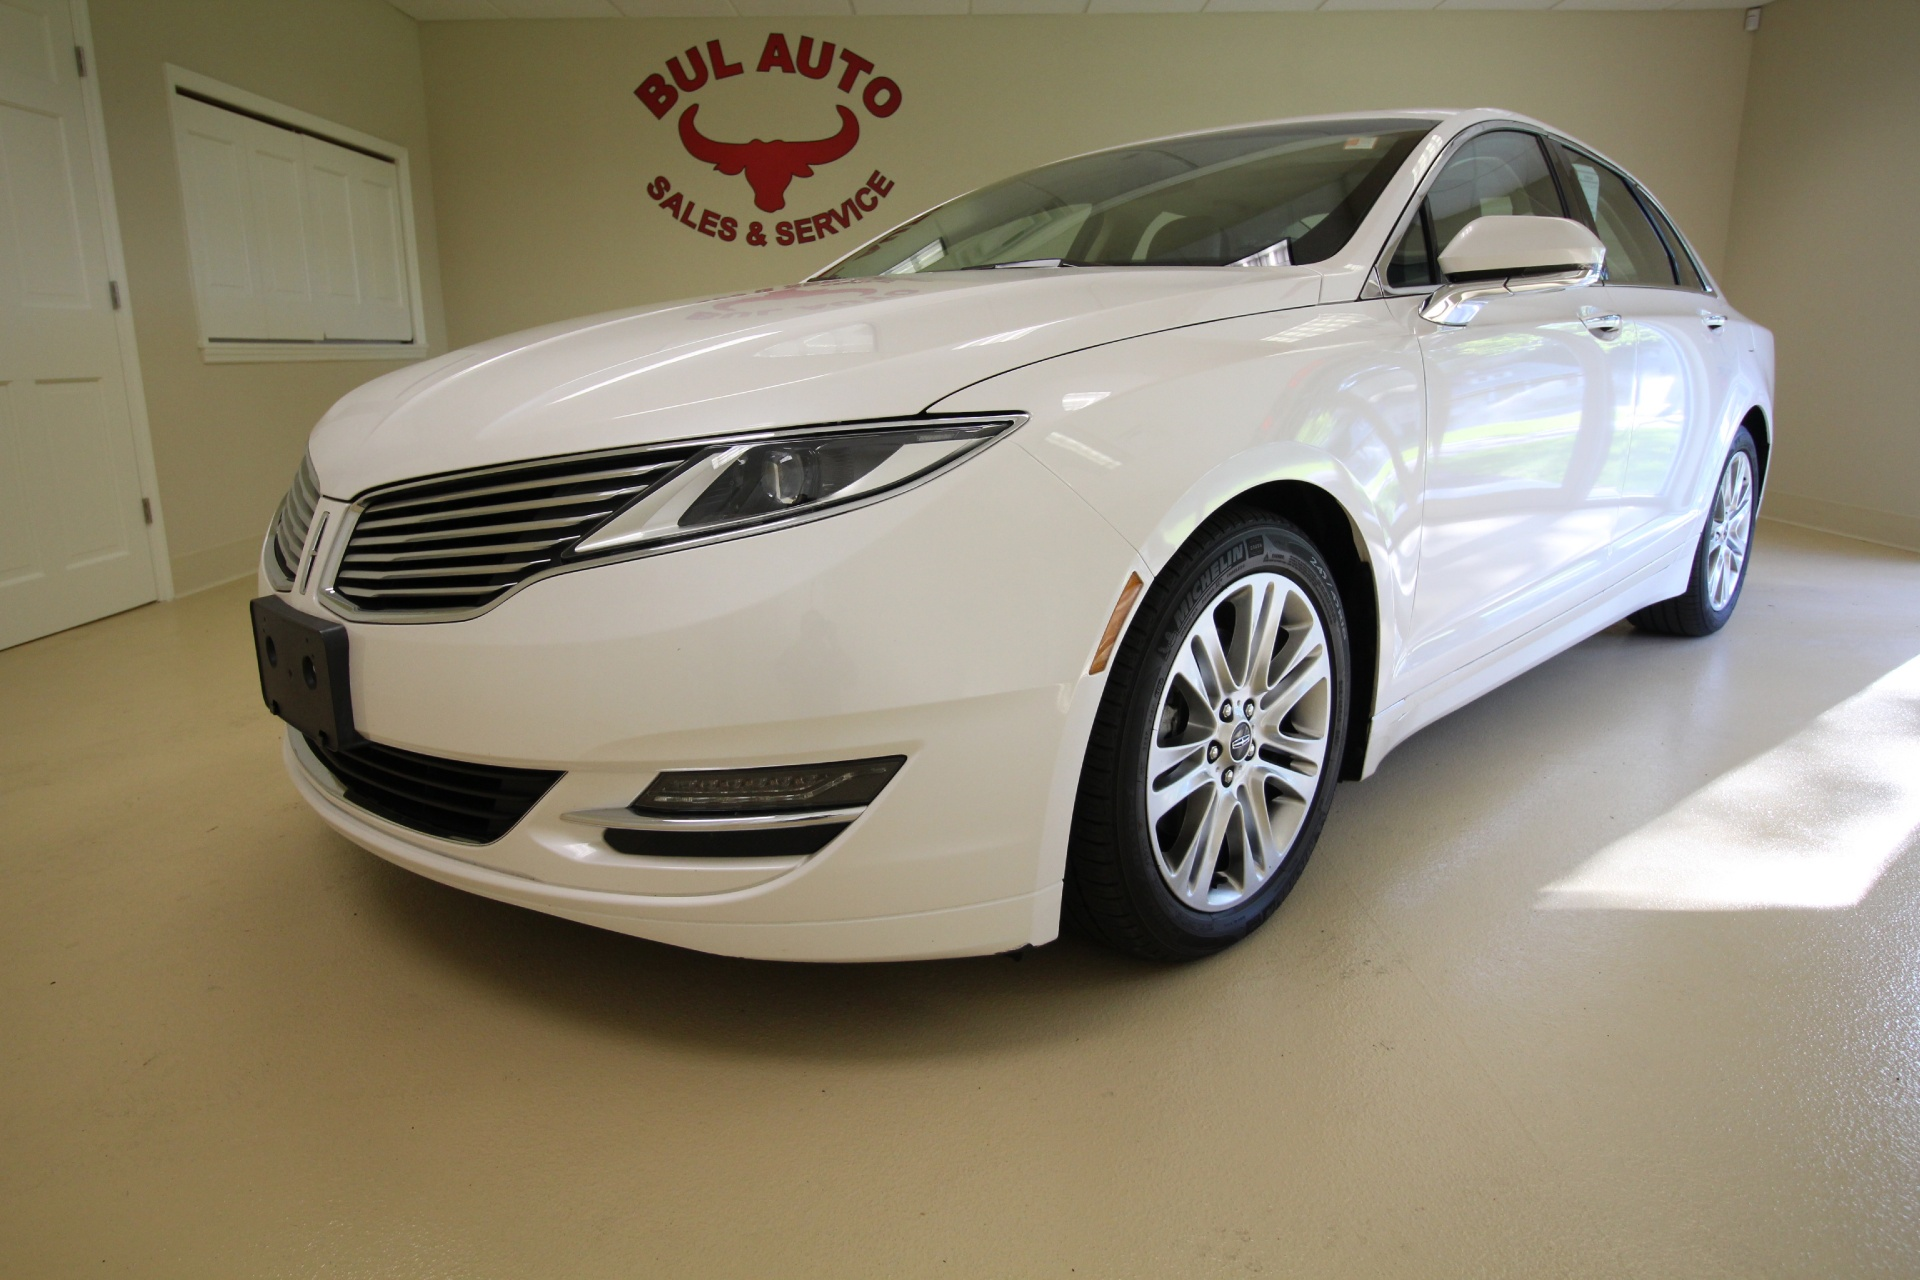 used lincoln seats backup camera cooled heated sale chatham start remote inventory mkz for ontario in